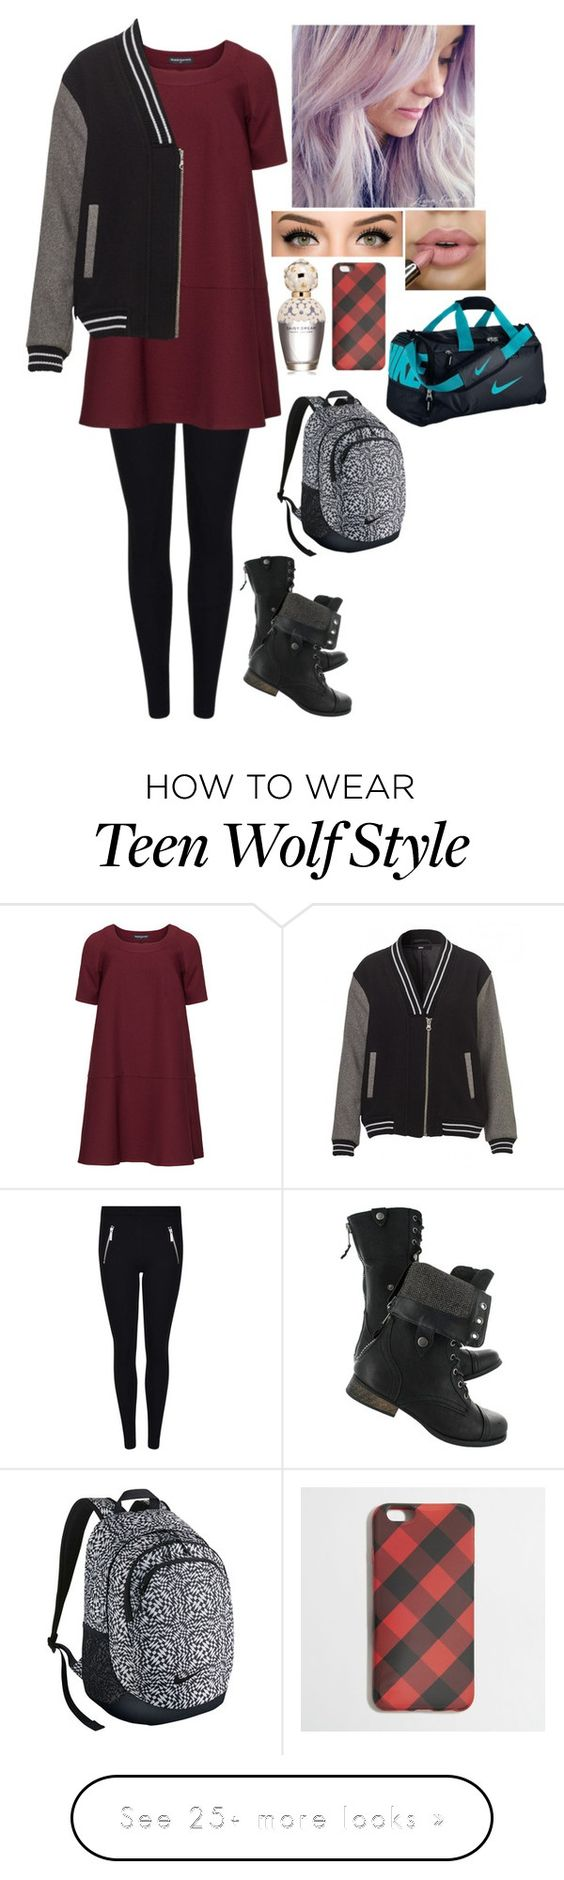 """""""Alice Stilinski (Teen Wolf FF)"""" by myanoelle on Polyvore featuring Manon Baptiste, Marc Jacobs, J.Crew, NIKE and plus size dresses"""